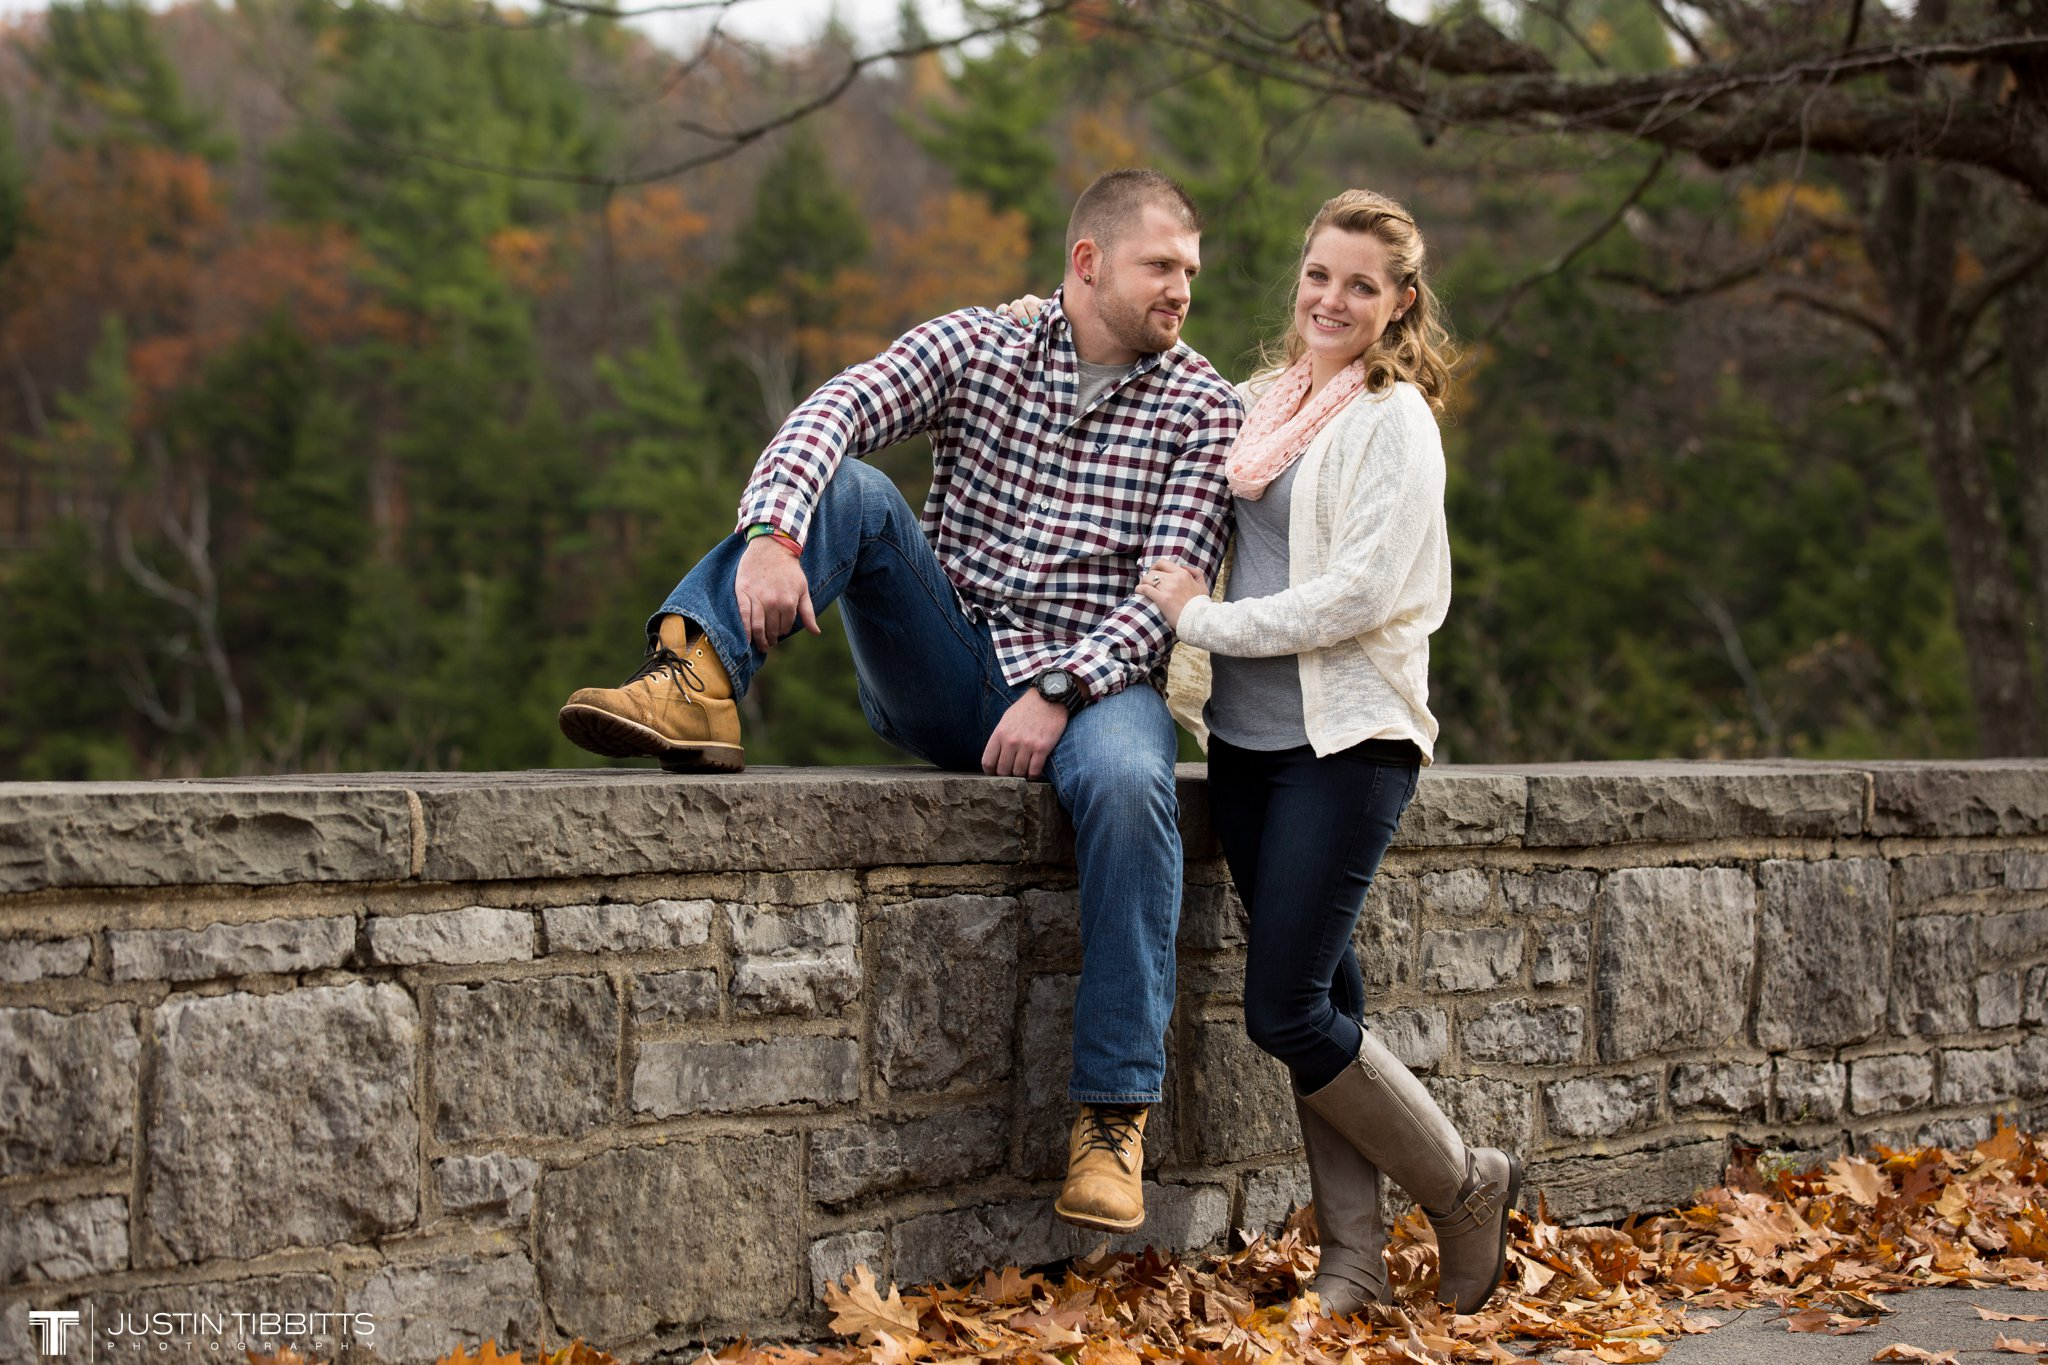 Justin Tibbitts Photography Ashlee and Steves Thatcher Park, New York Engagement Shoot-9-2